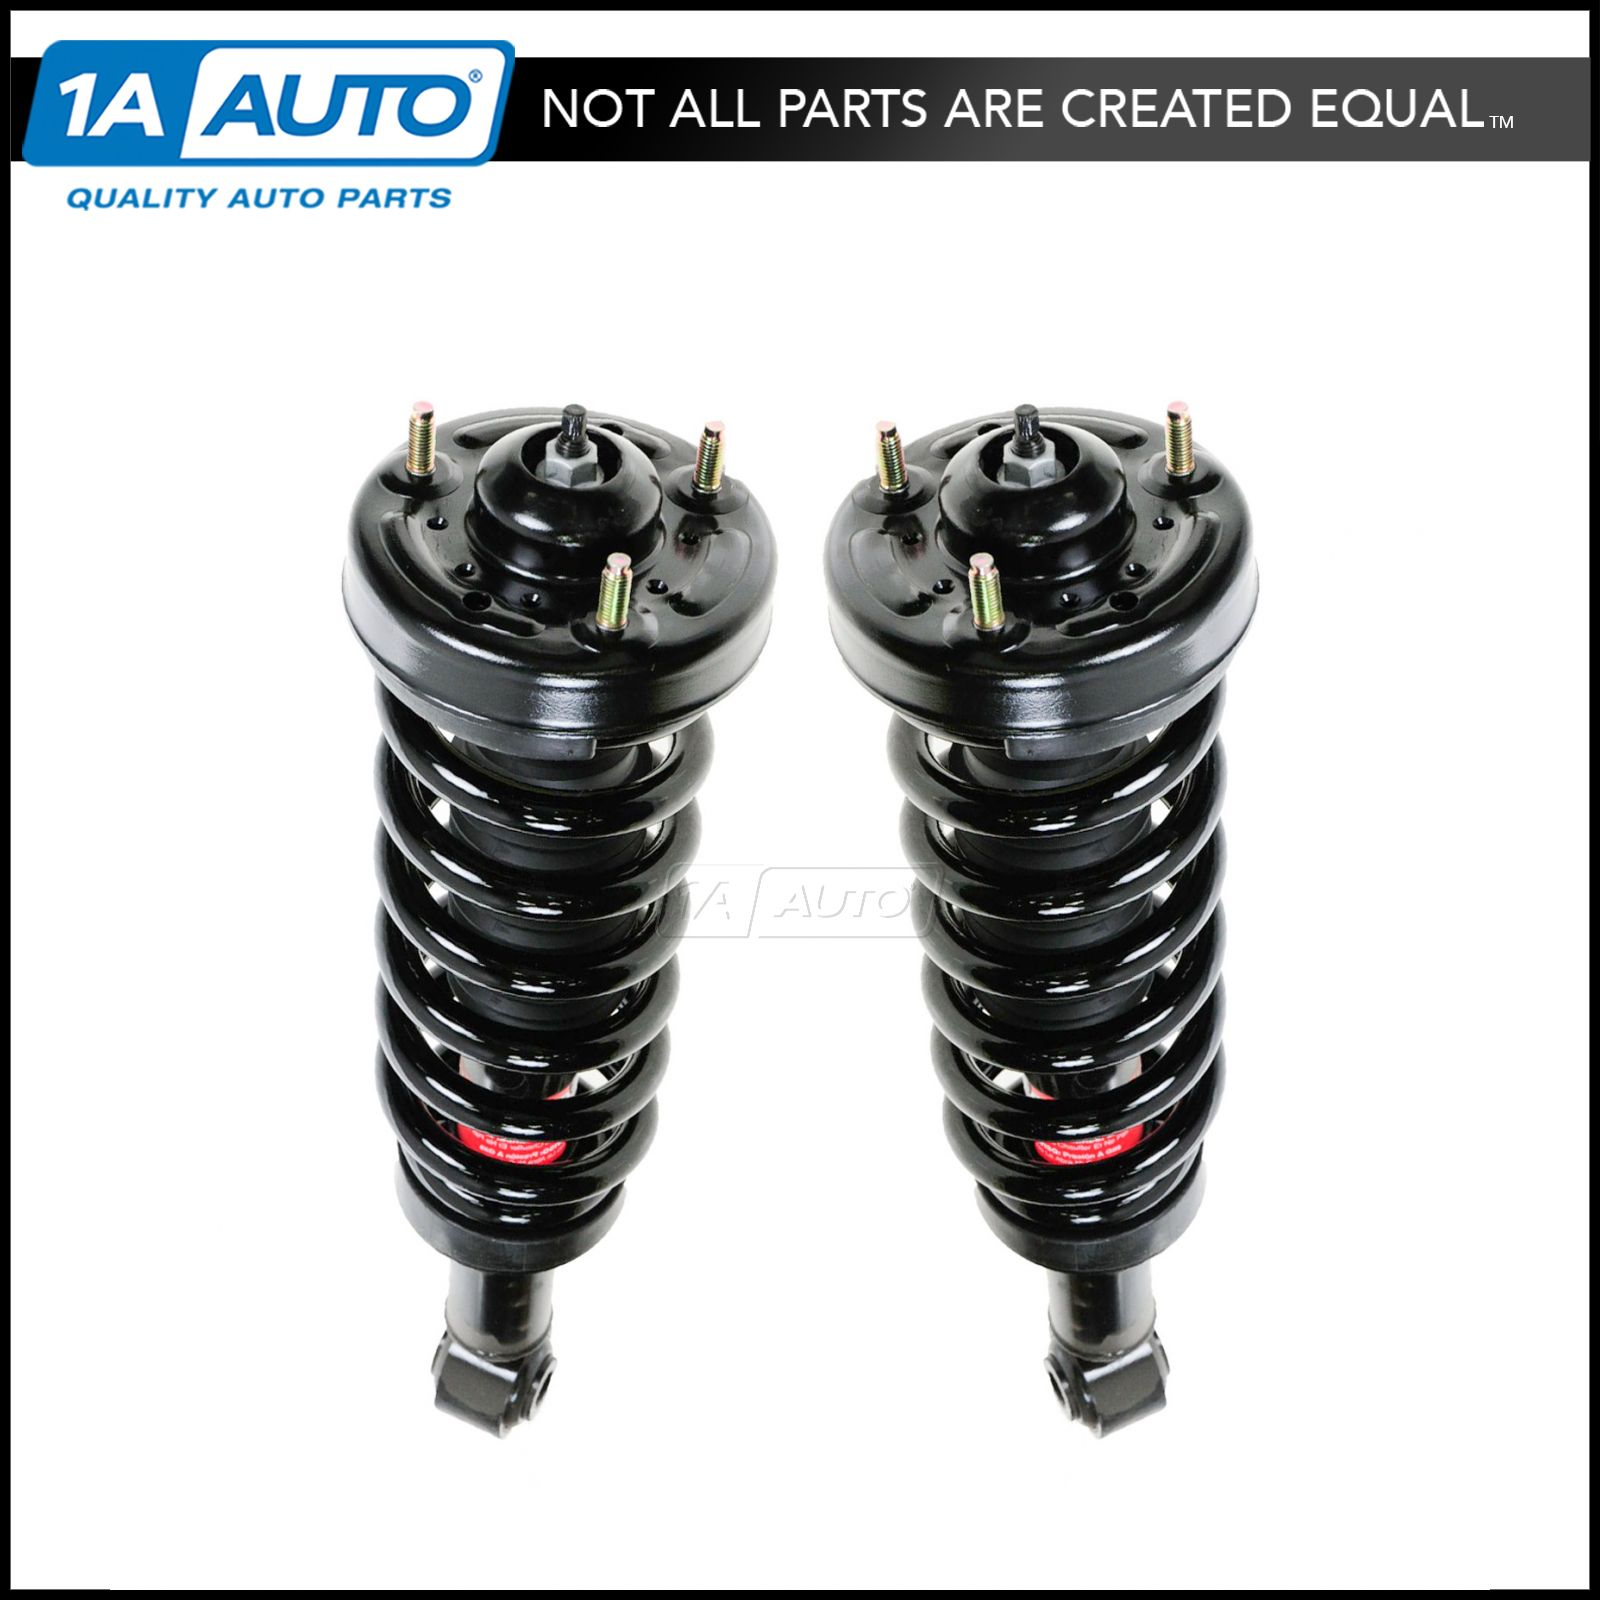 TUPARTS 2x Rear 340072 71139 Struts Shocks Absorbers Fit for 2007 2008 2009 2010 2011 2012 2013 2014 2015 Ford Expedition,2007 2008 2009 2010 2011 2012 2013 2014 2015 Lincoln Navigator